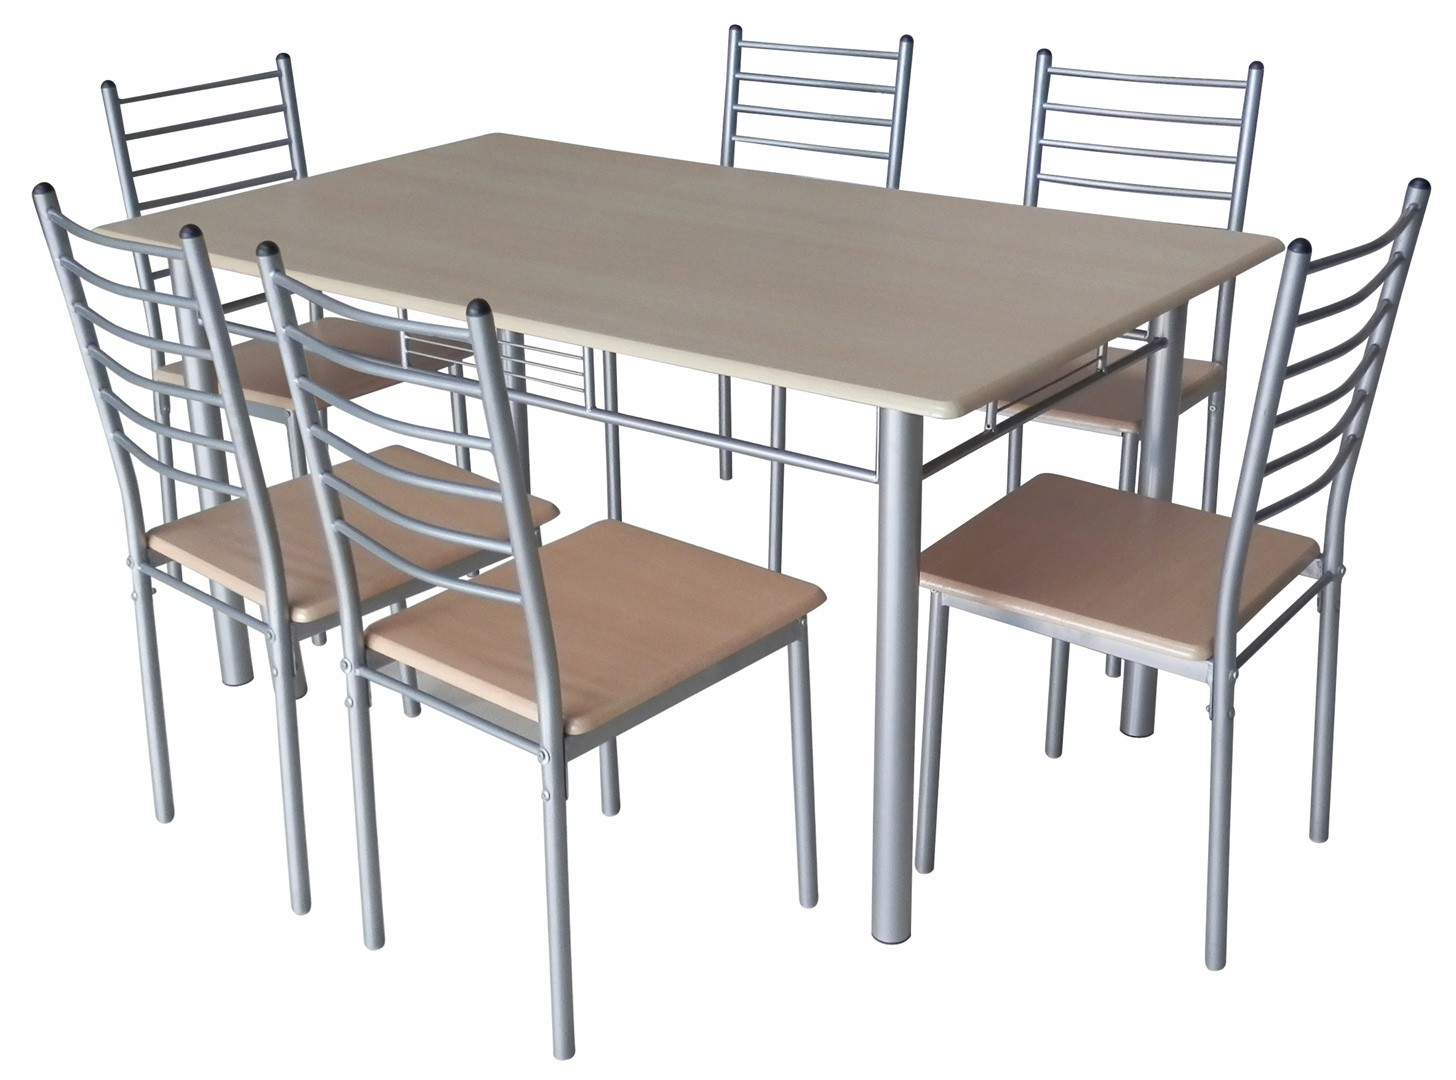 Ensemble table et chaises de cuisine but chaise id es for Table de cuisine chaises